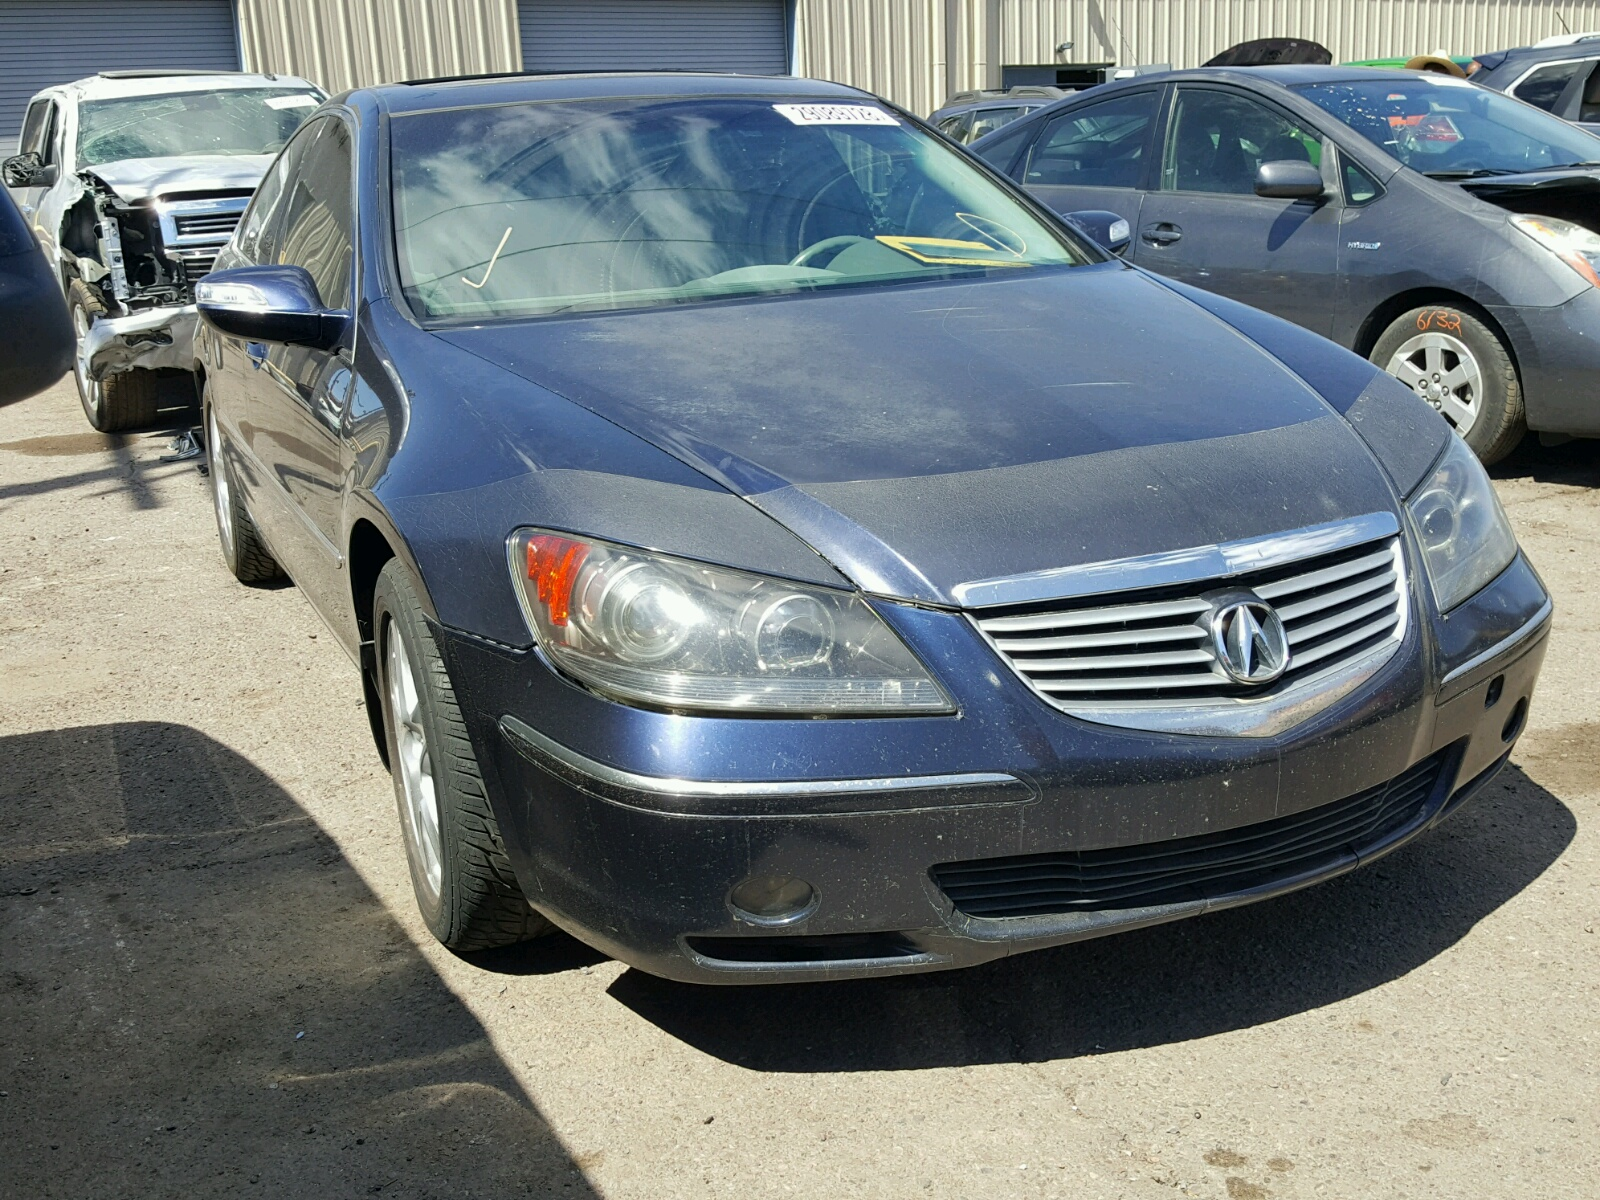 JHKBC RED ACURA RL On Sale In AZ PHOENIX Lot - 2005 acura rl front grill